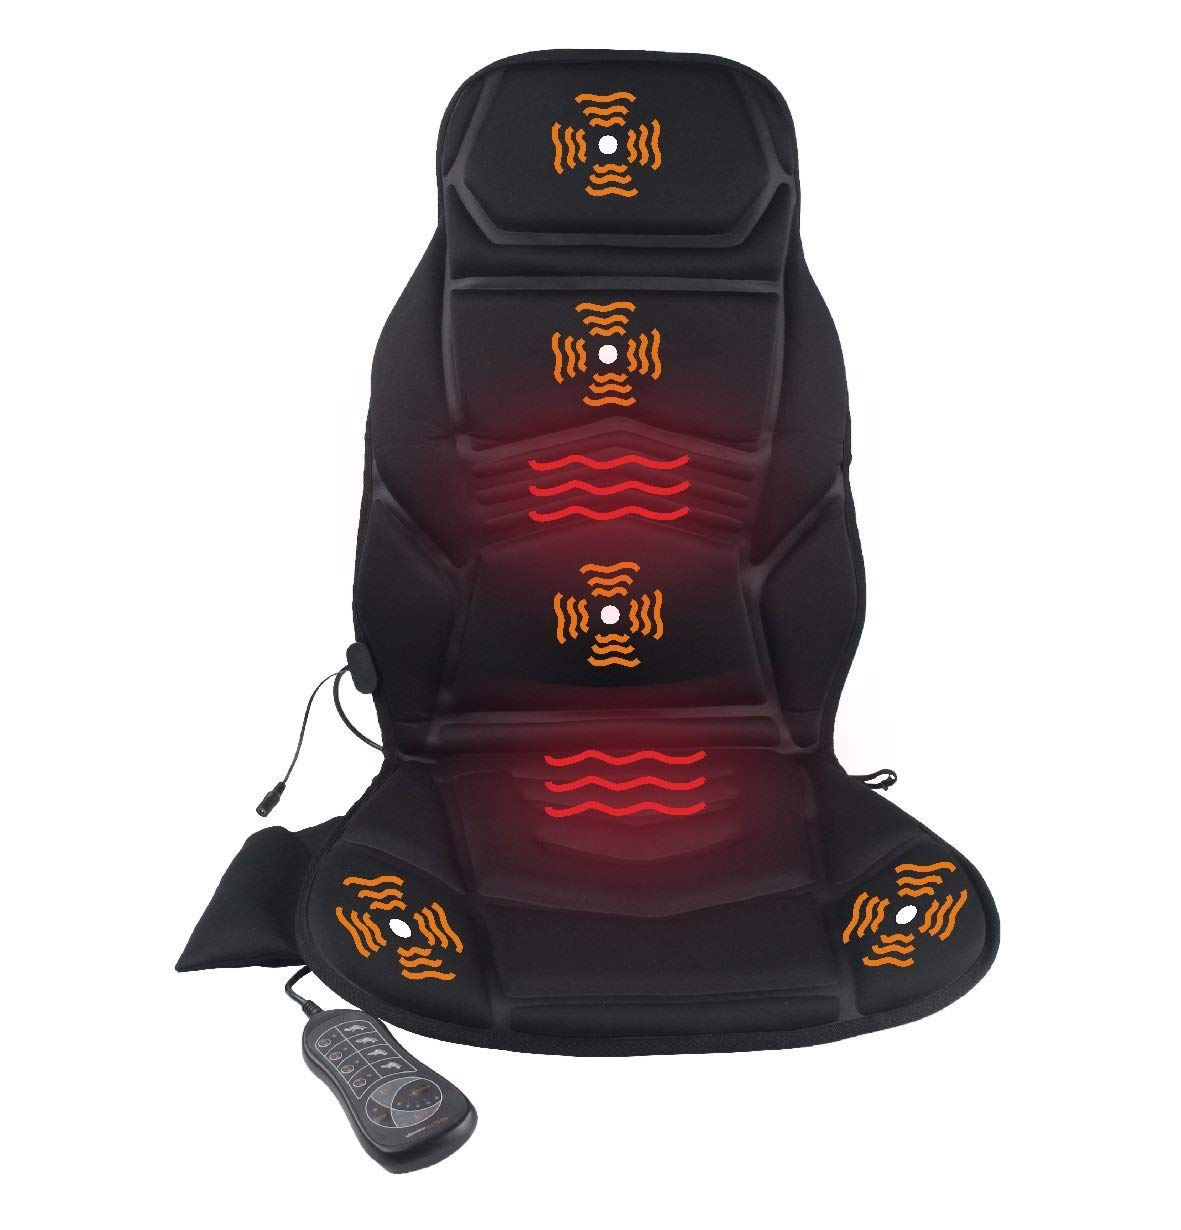 IDODO Vibration Back Massager Seat Cushion with Heat, Electric Massage Chair Pad with 5 Vibrating Motors & Heating Therapy to Release Stress and Fatigue for Home Office or Car Use